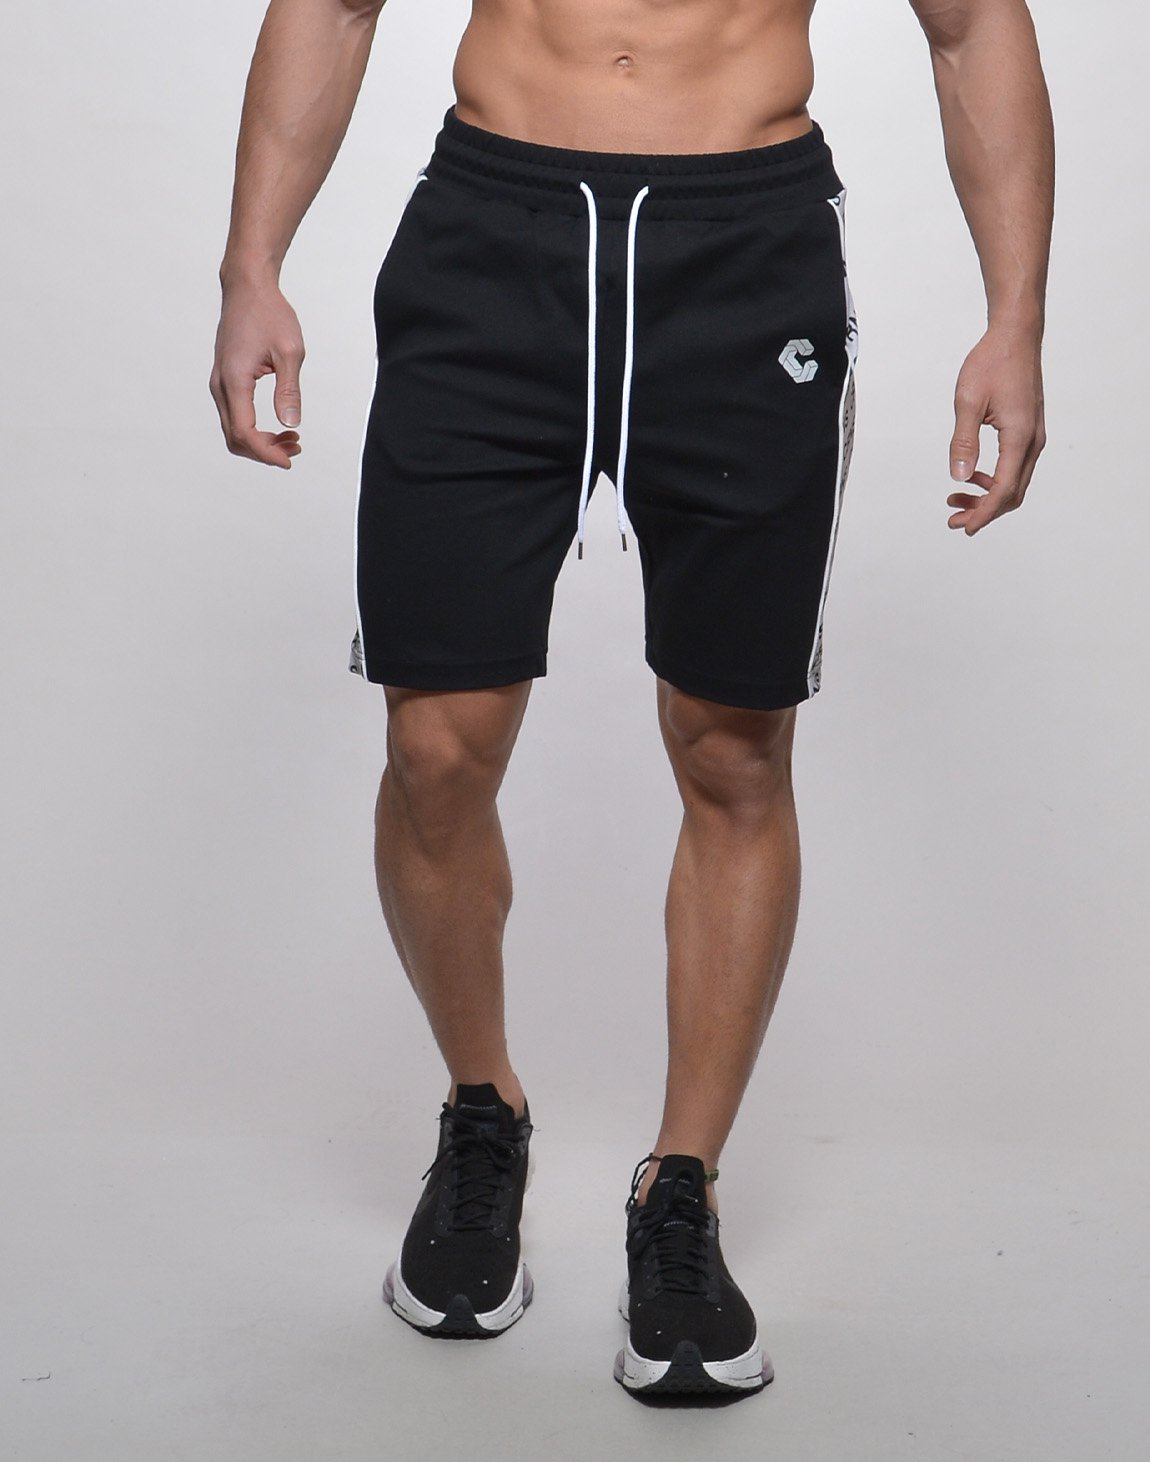 <img class='new_mark_img1' src='https://img.shop-pro.jp/img/new/icons1.gif' style='border:none;display:inline;margin:0px;padding:0px;width:auto;' />CRNS NEW LINE SHORTS【BLACK】